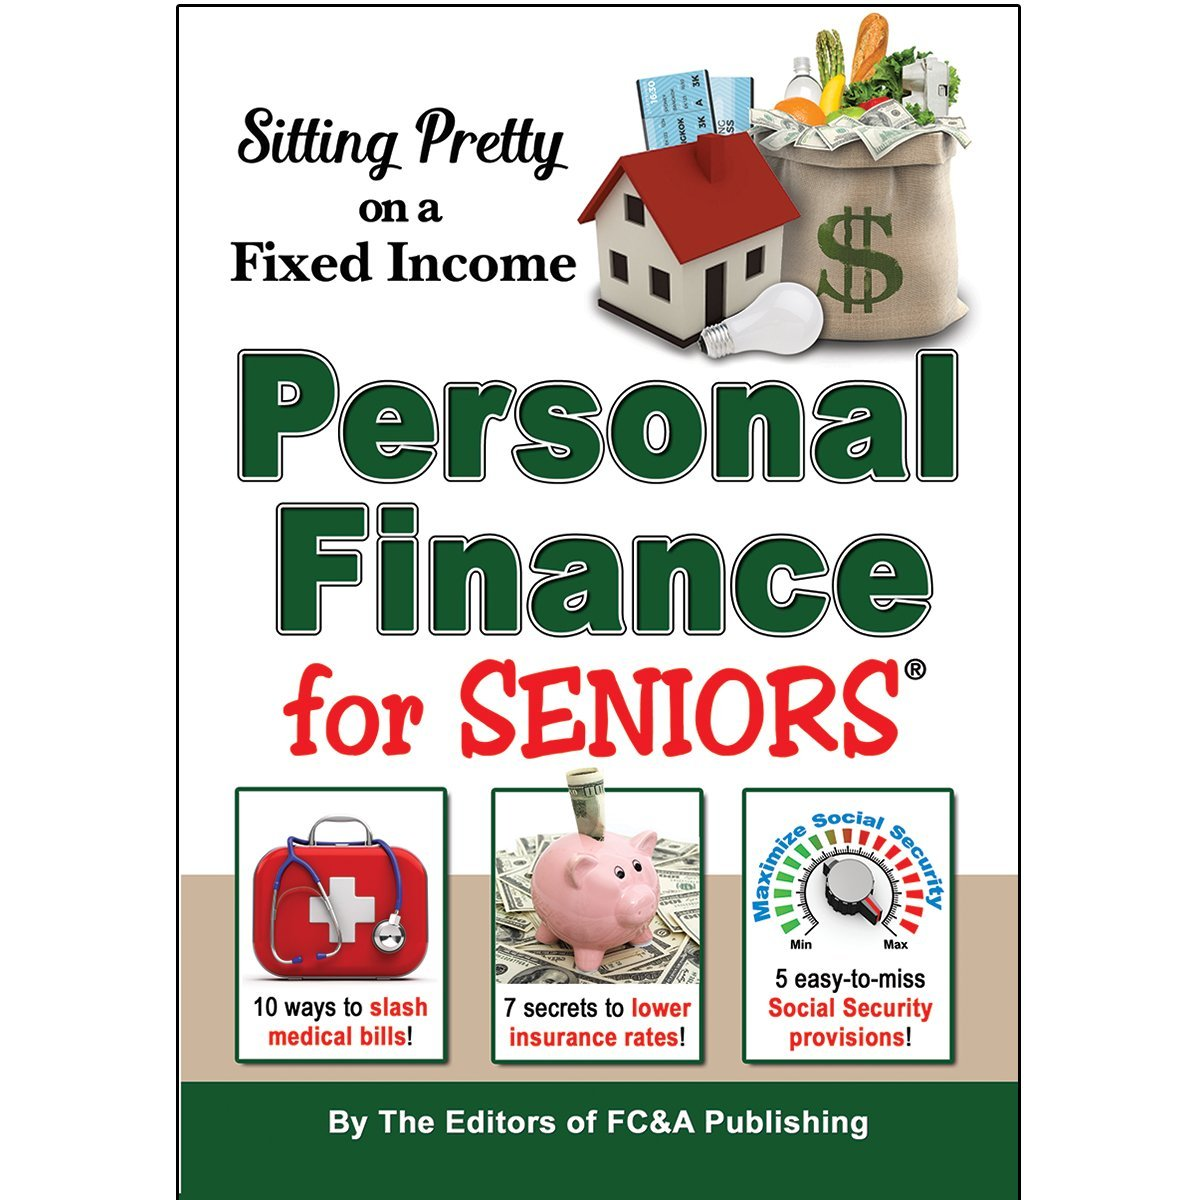 Download Sitting Pretty On a Fixed Income: 1,001 Personal Finance Secrets for Seniors PDF